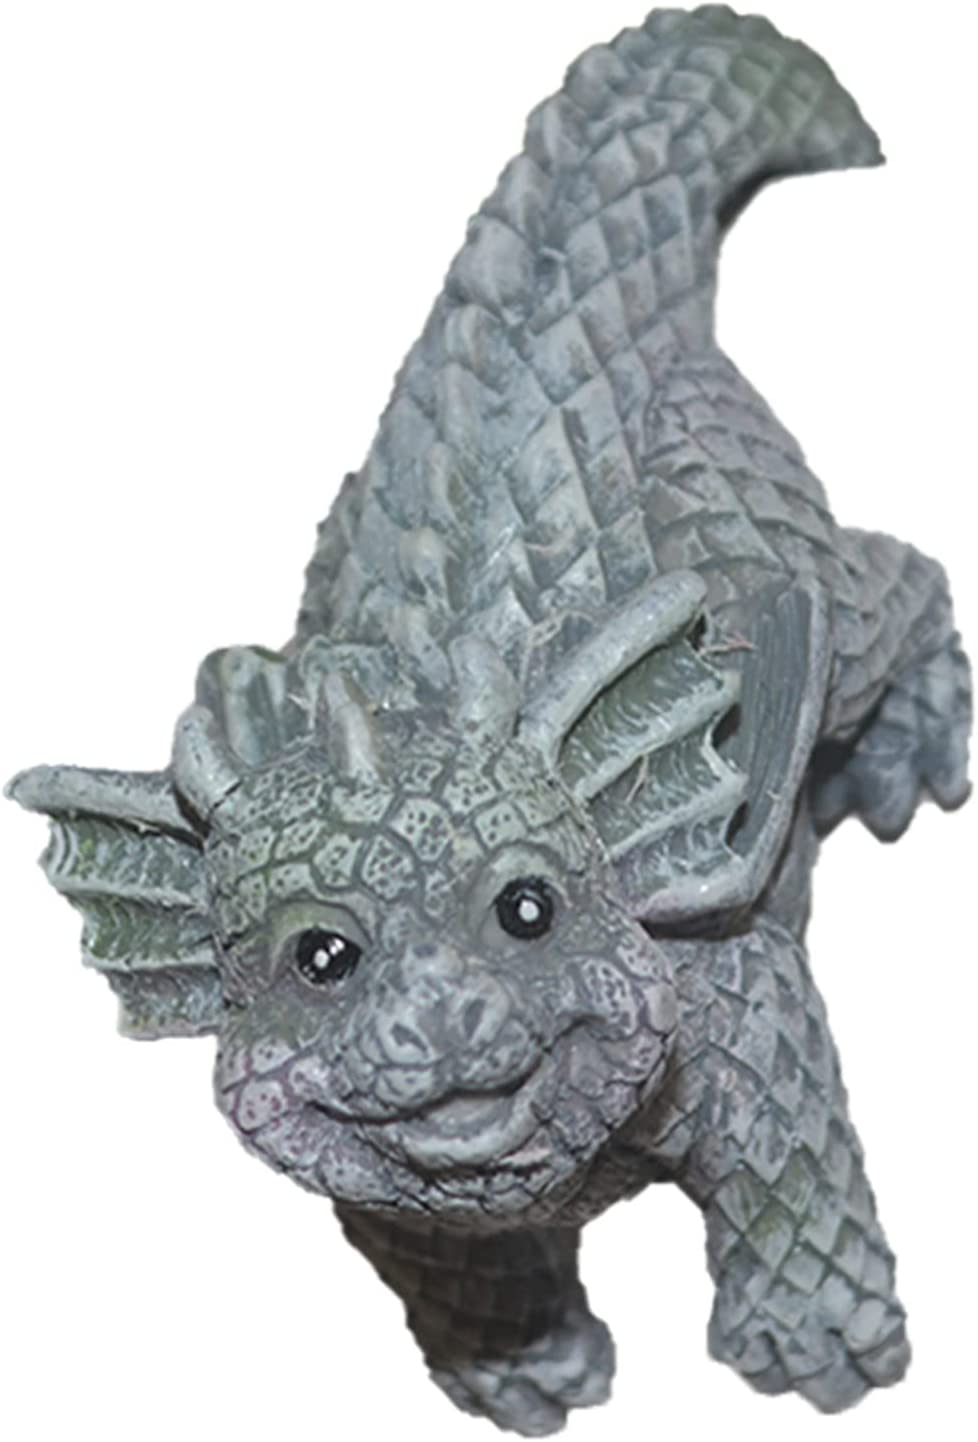 Decorative Outdoor OFFicial site Dragon Garden OFFicial Baby Statu Small Statue